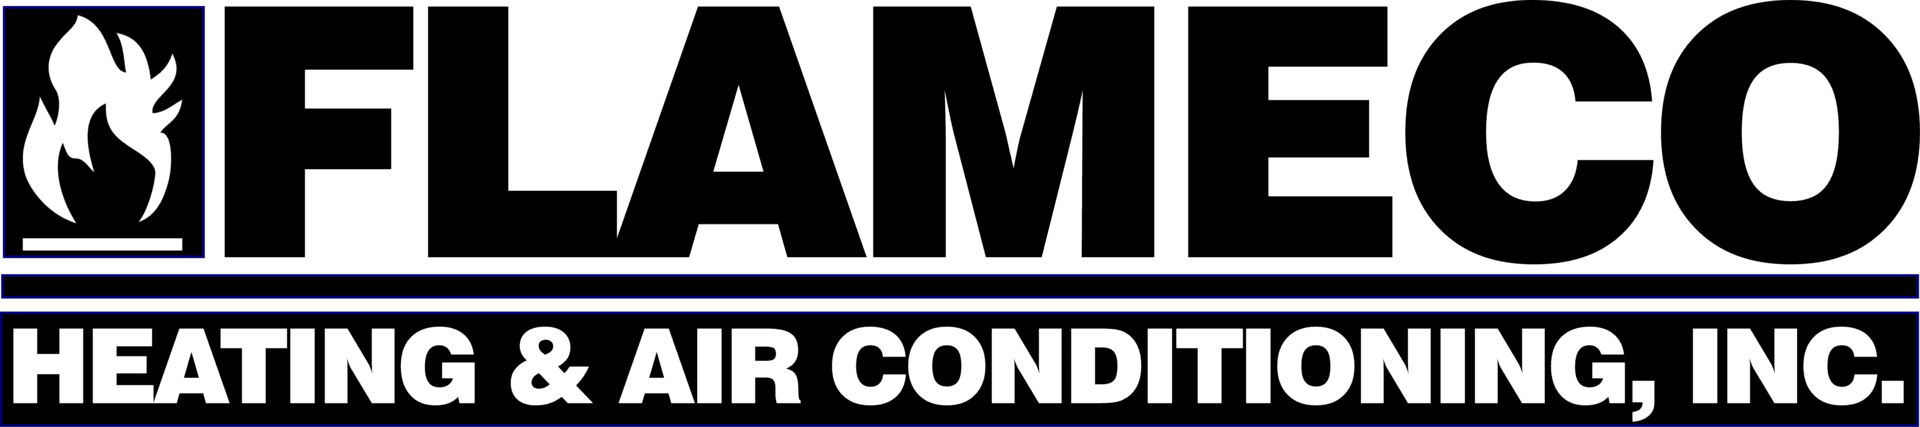 FlameCo Heating & Air Conditioning Inc. - Logo